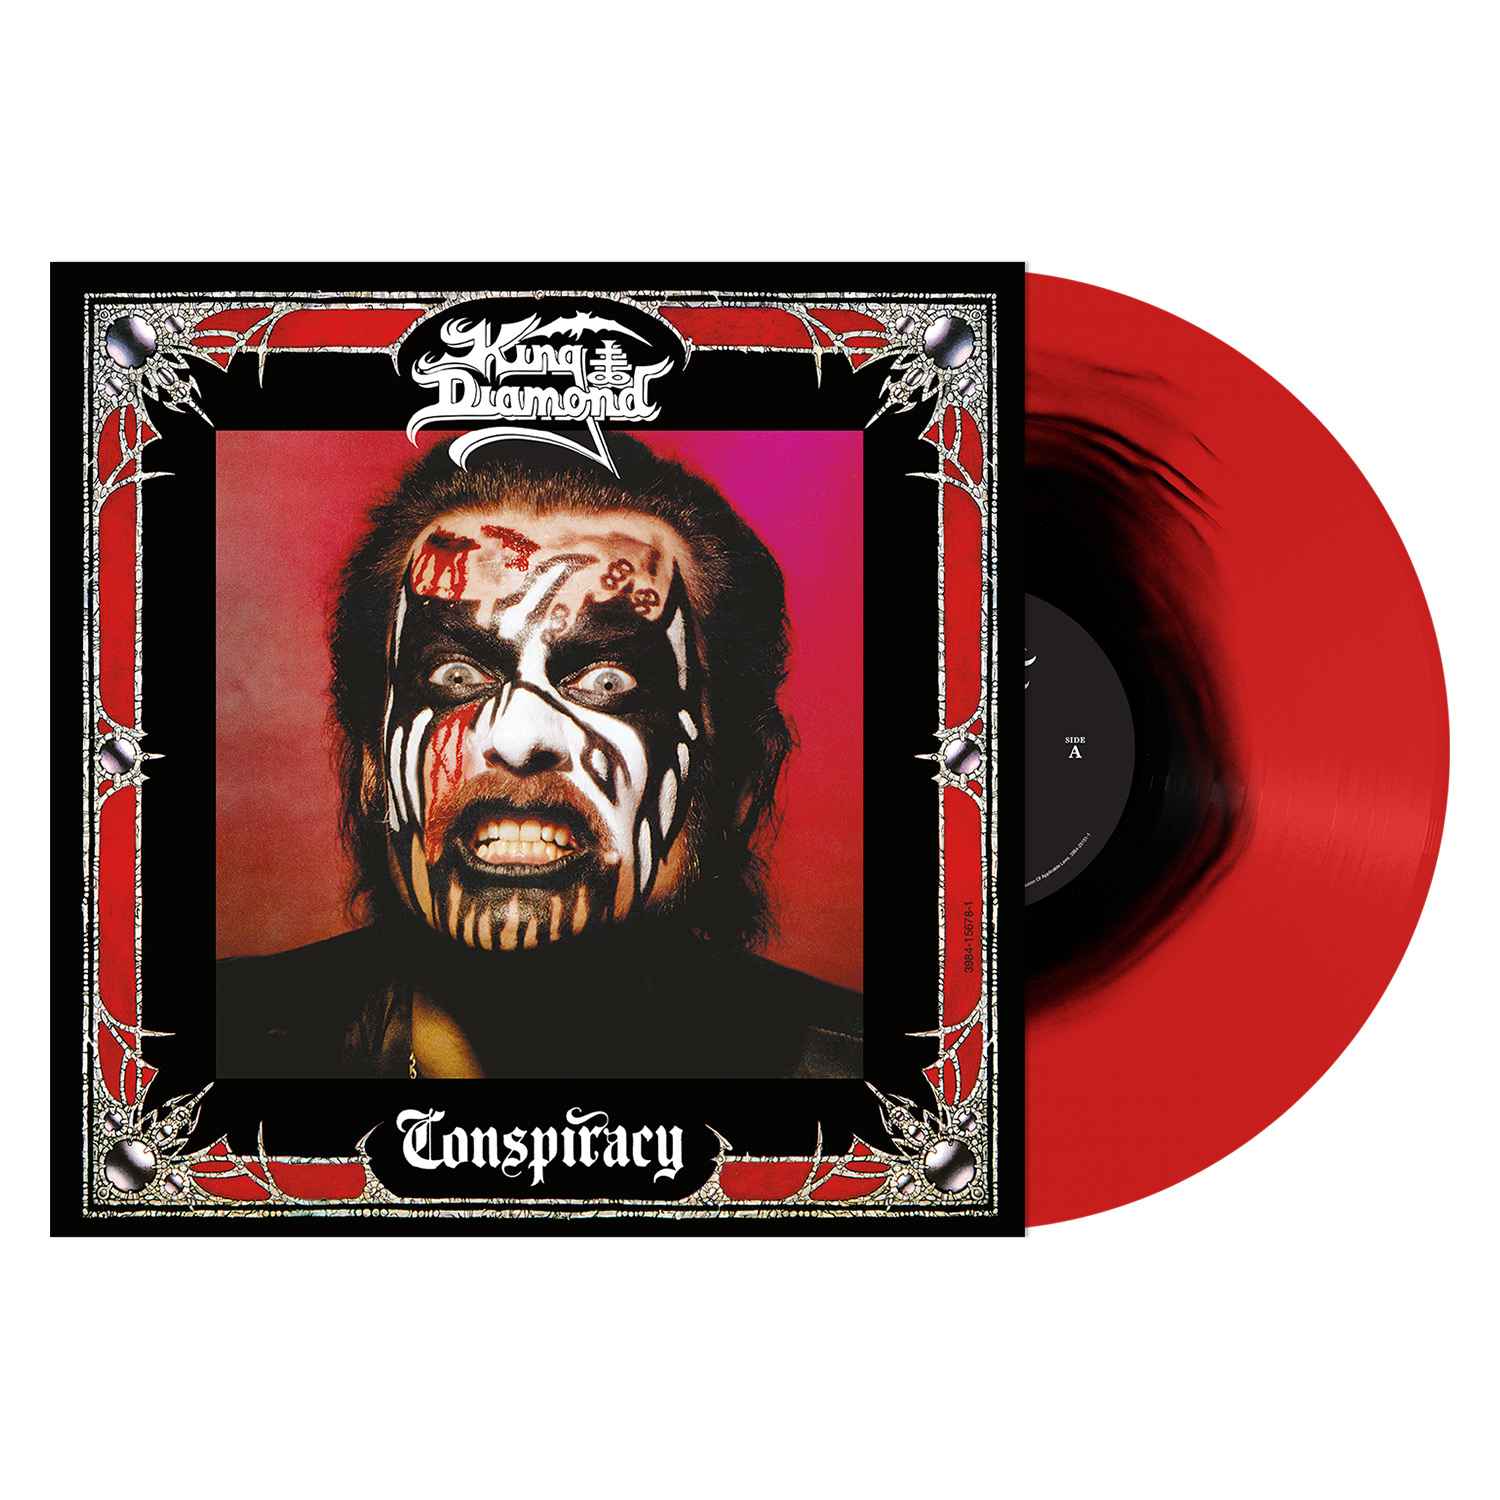 Conspiracy (Red and Black Haze Vinyl)